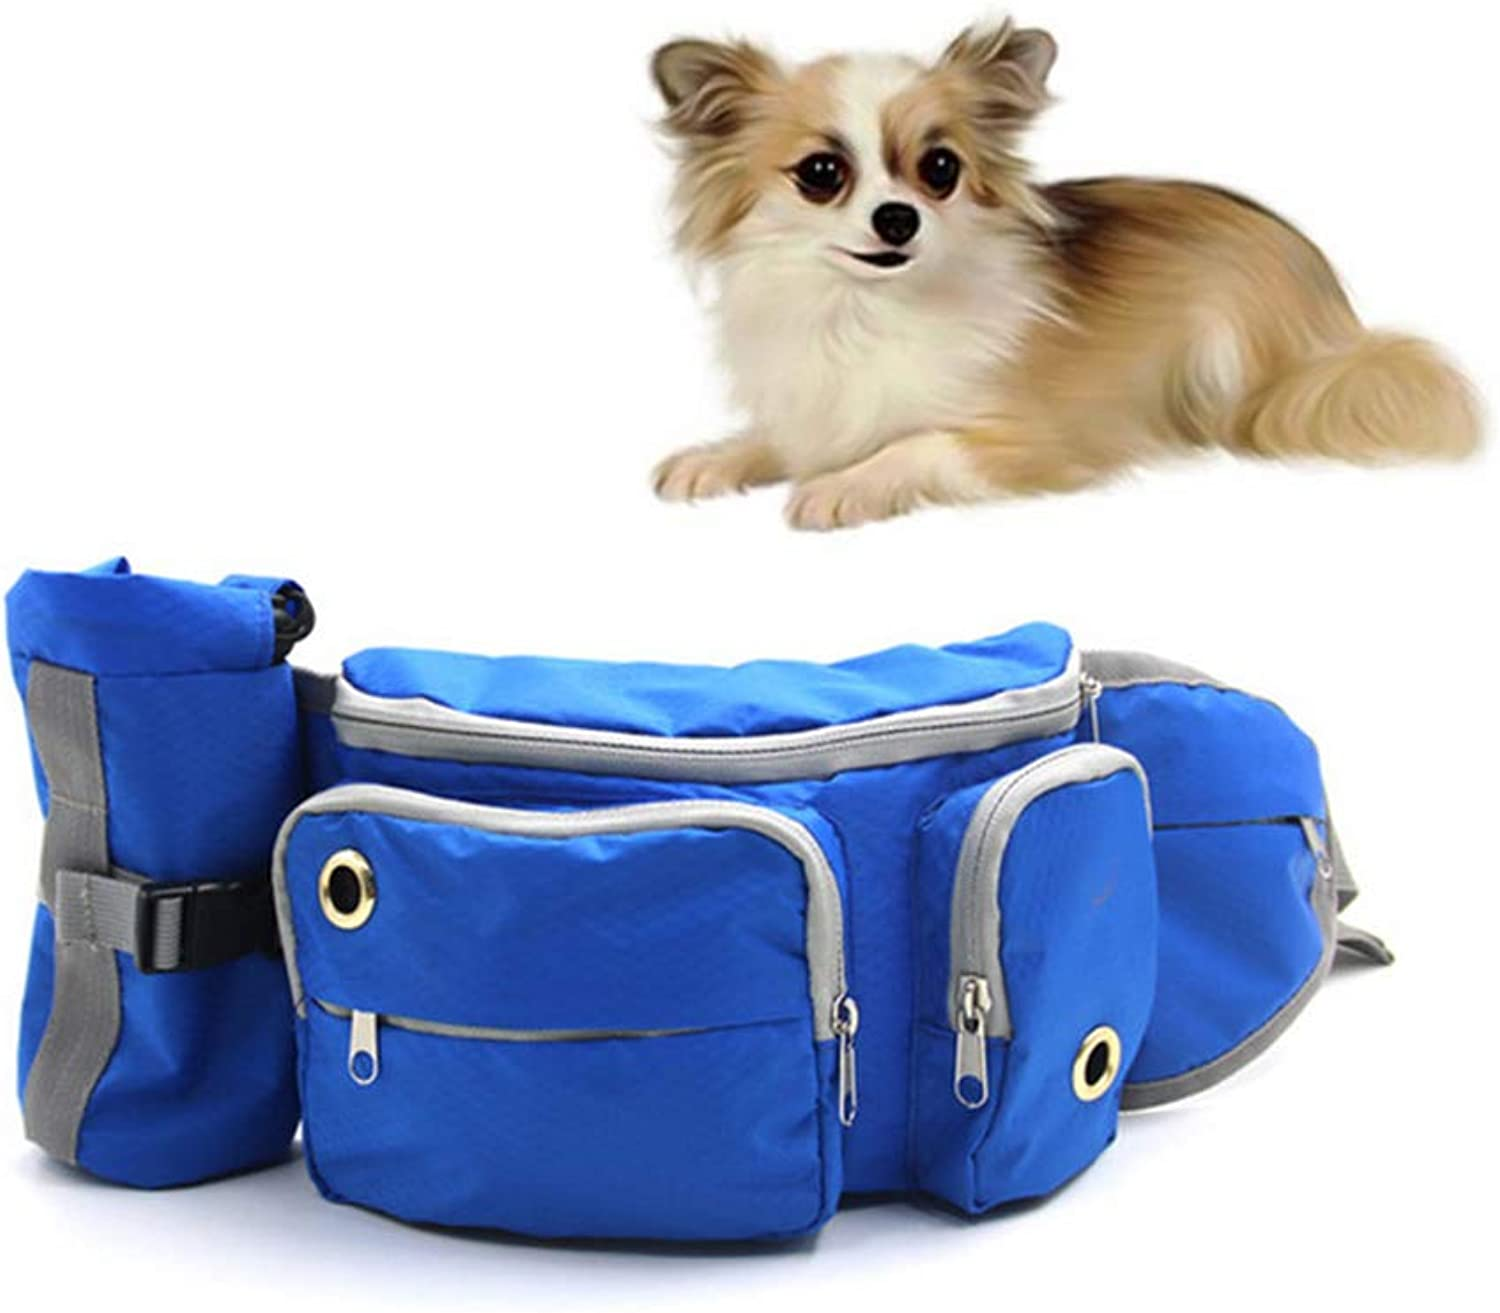 Dog Treat Training Pouch Bag, Dog Treat Training Pouch Waterproof Lining Poop Bag with Waist Clip and Drawstring, Treats  with Poop Bag, Builtin Poop Bag Dispenser